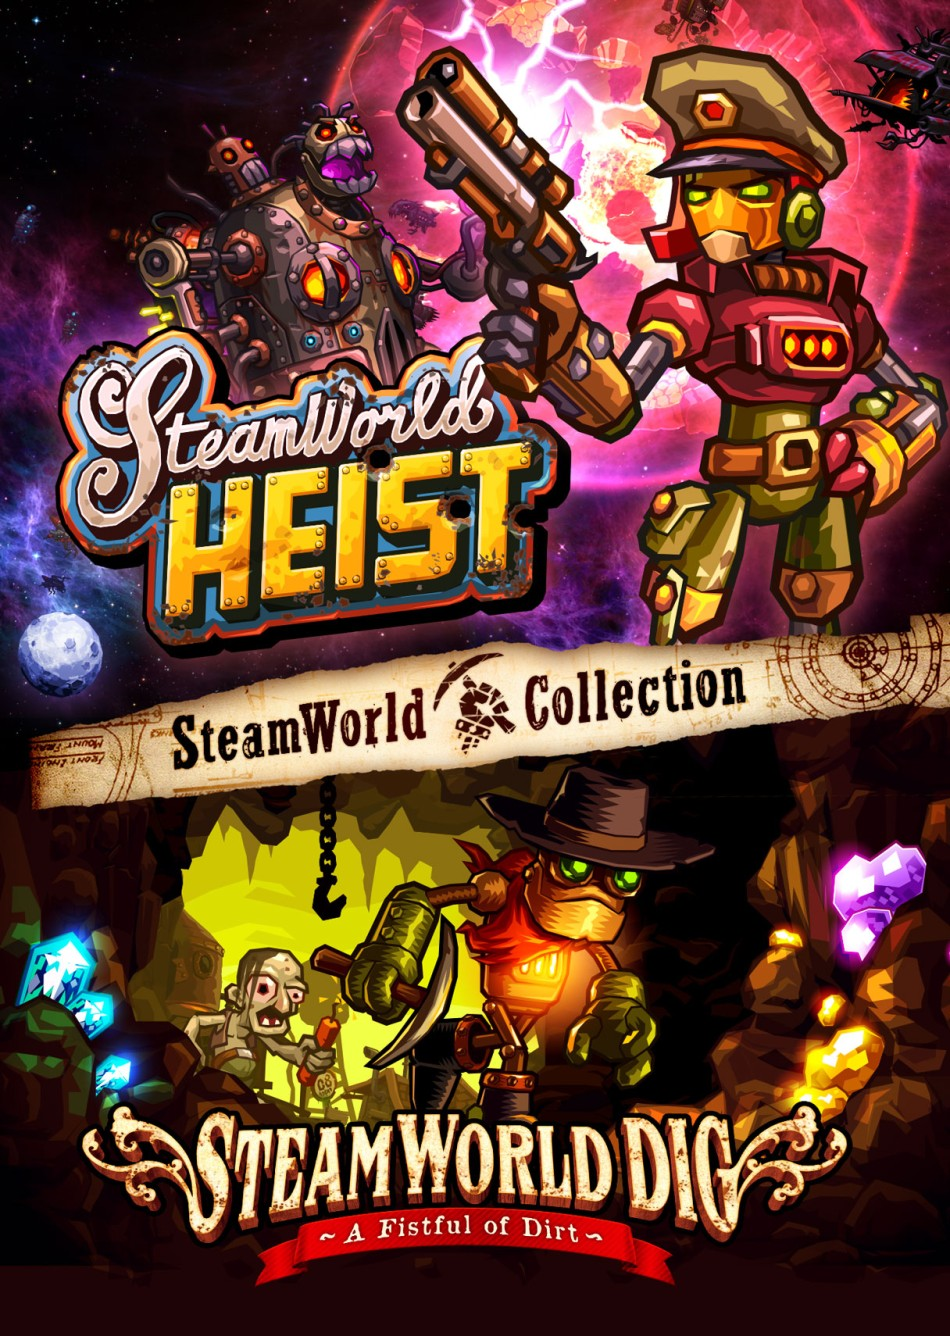 CI_WiiU_SteamWorldCollection_CoverArt.jpg